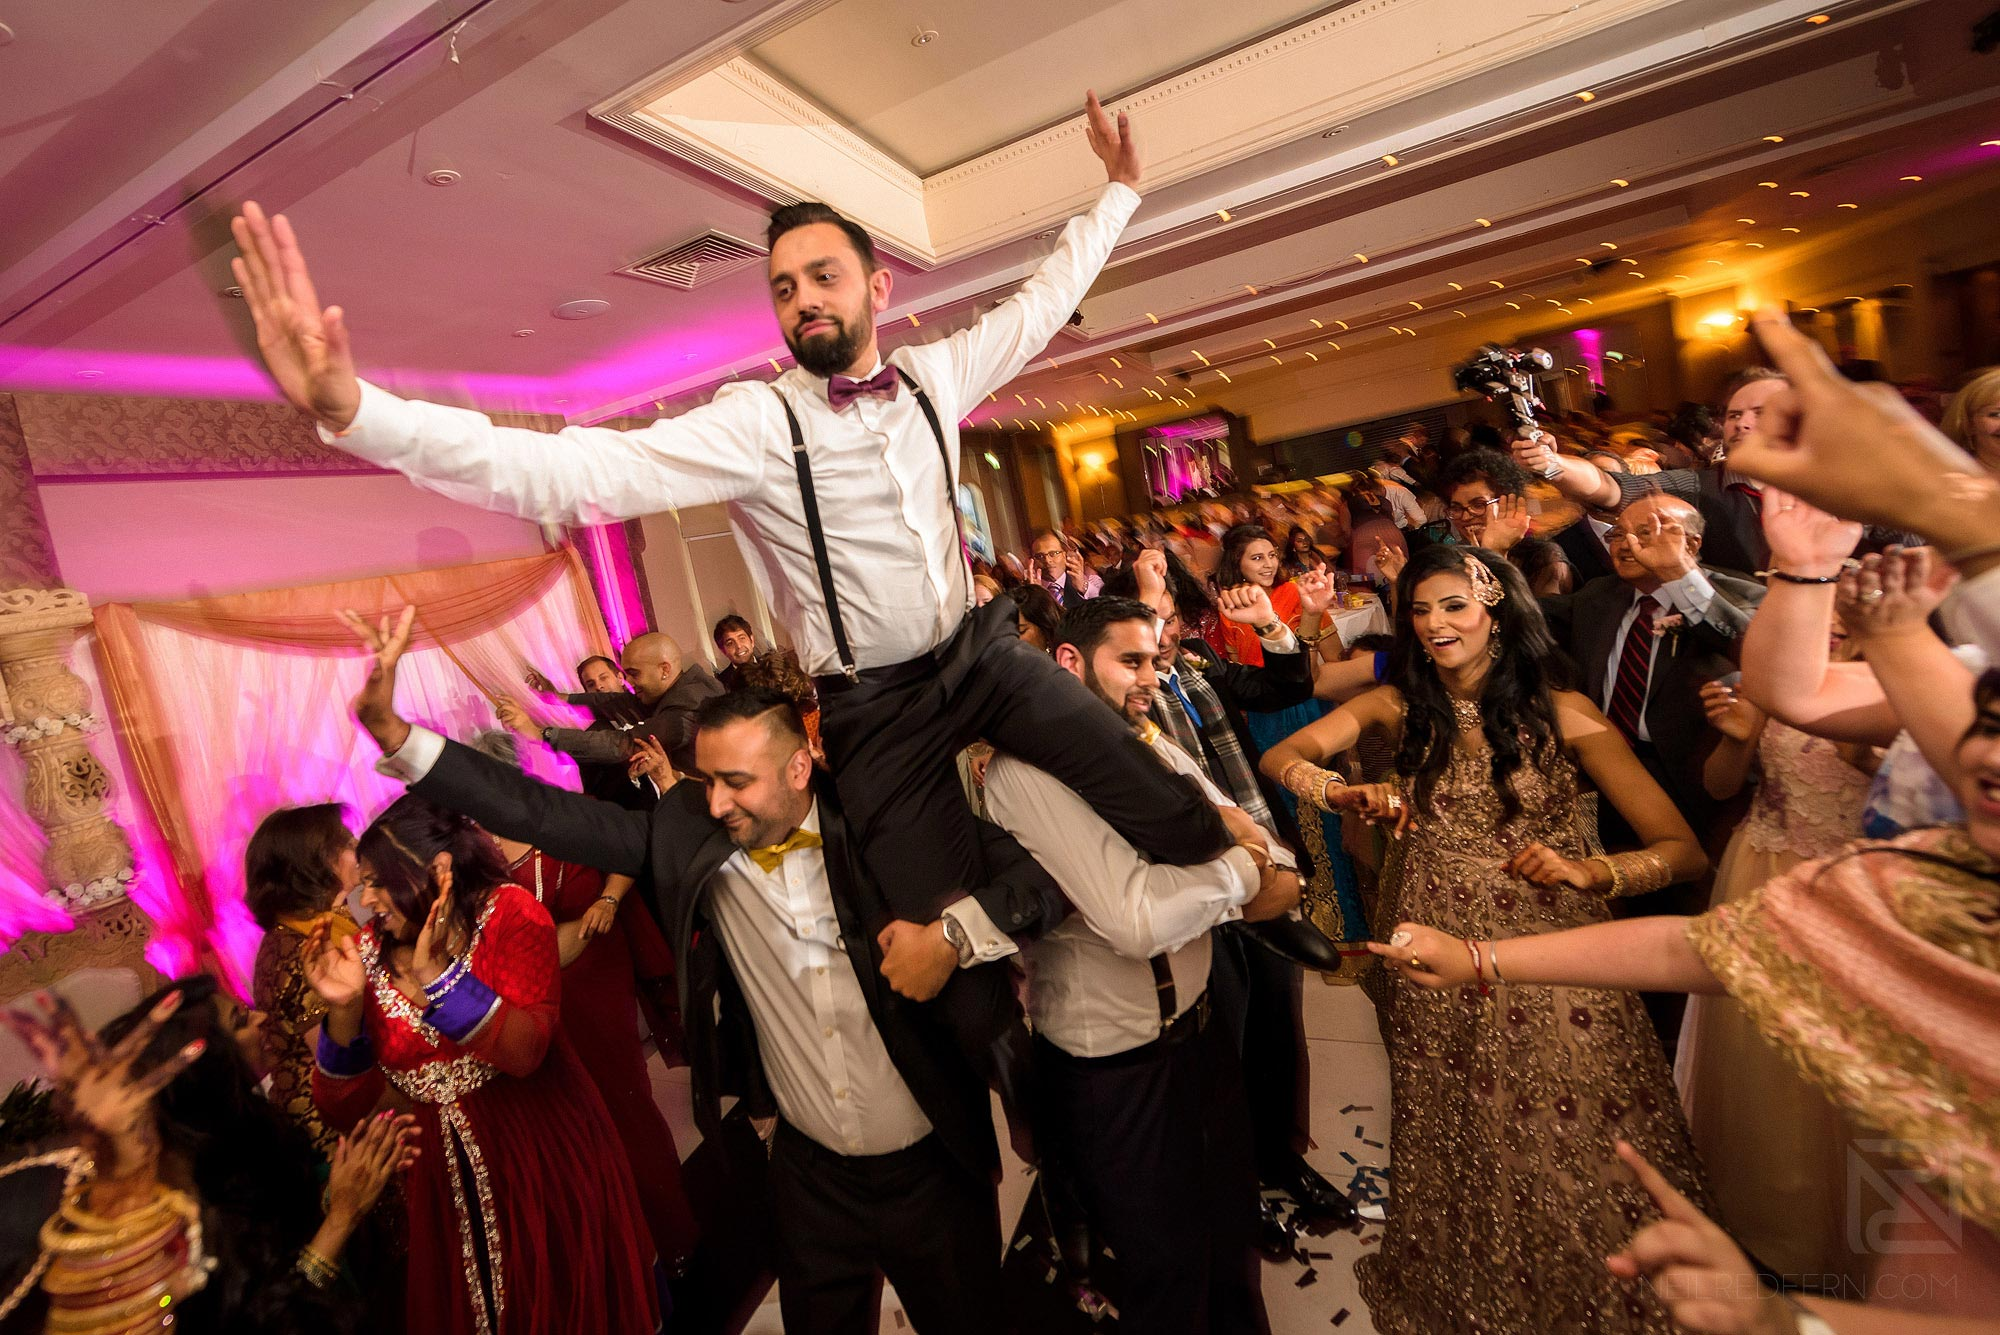 groom being picked up during wedding reception